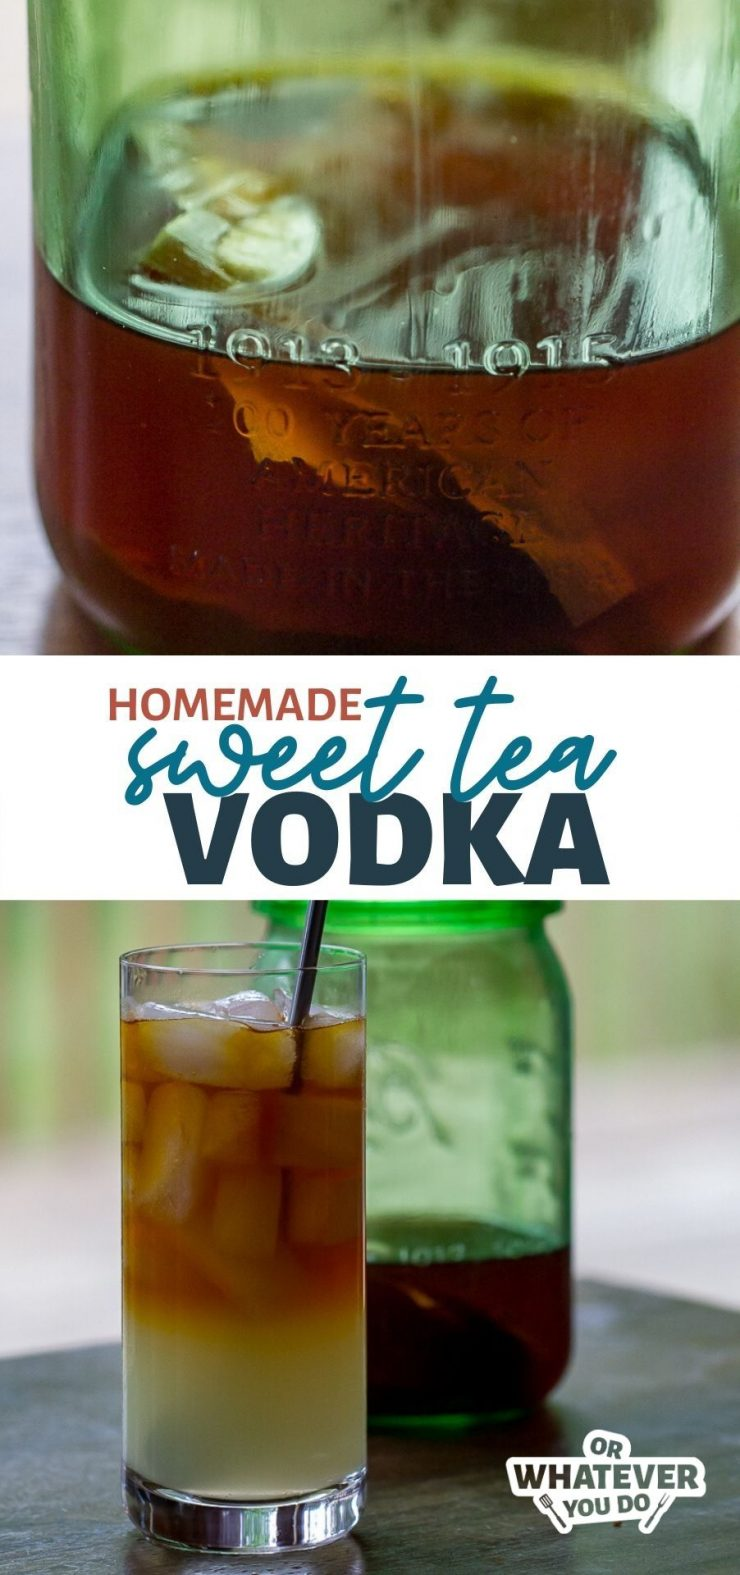 Homemade Sweet Tea Vodka with text on the image